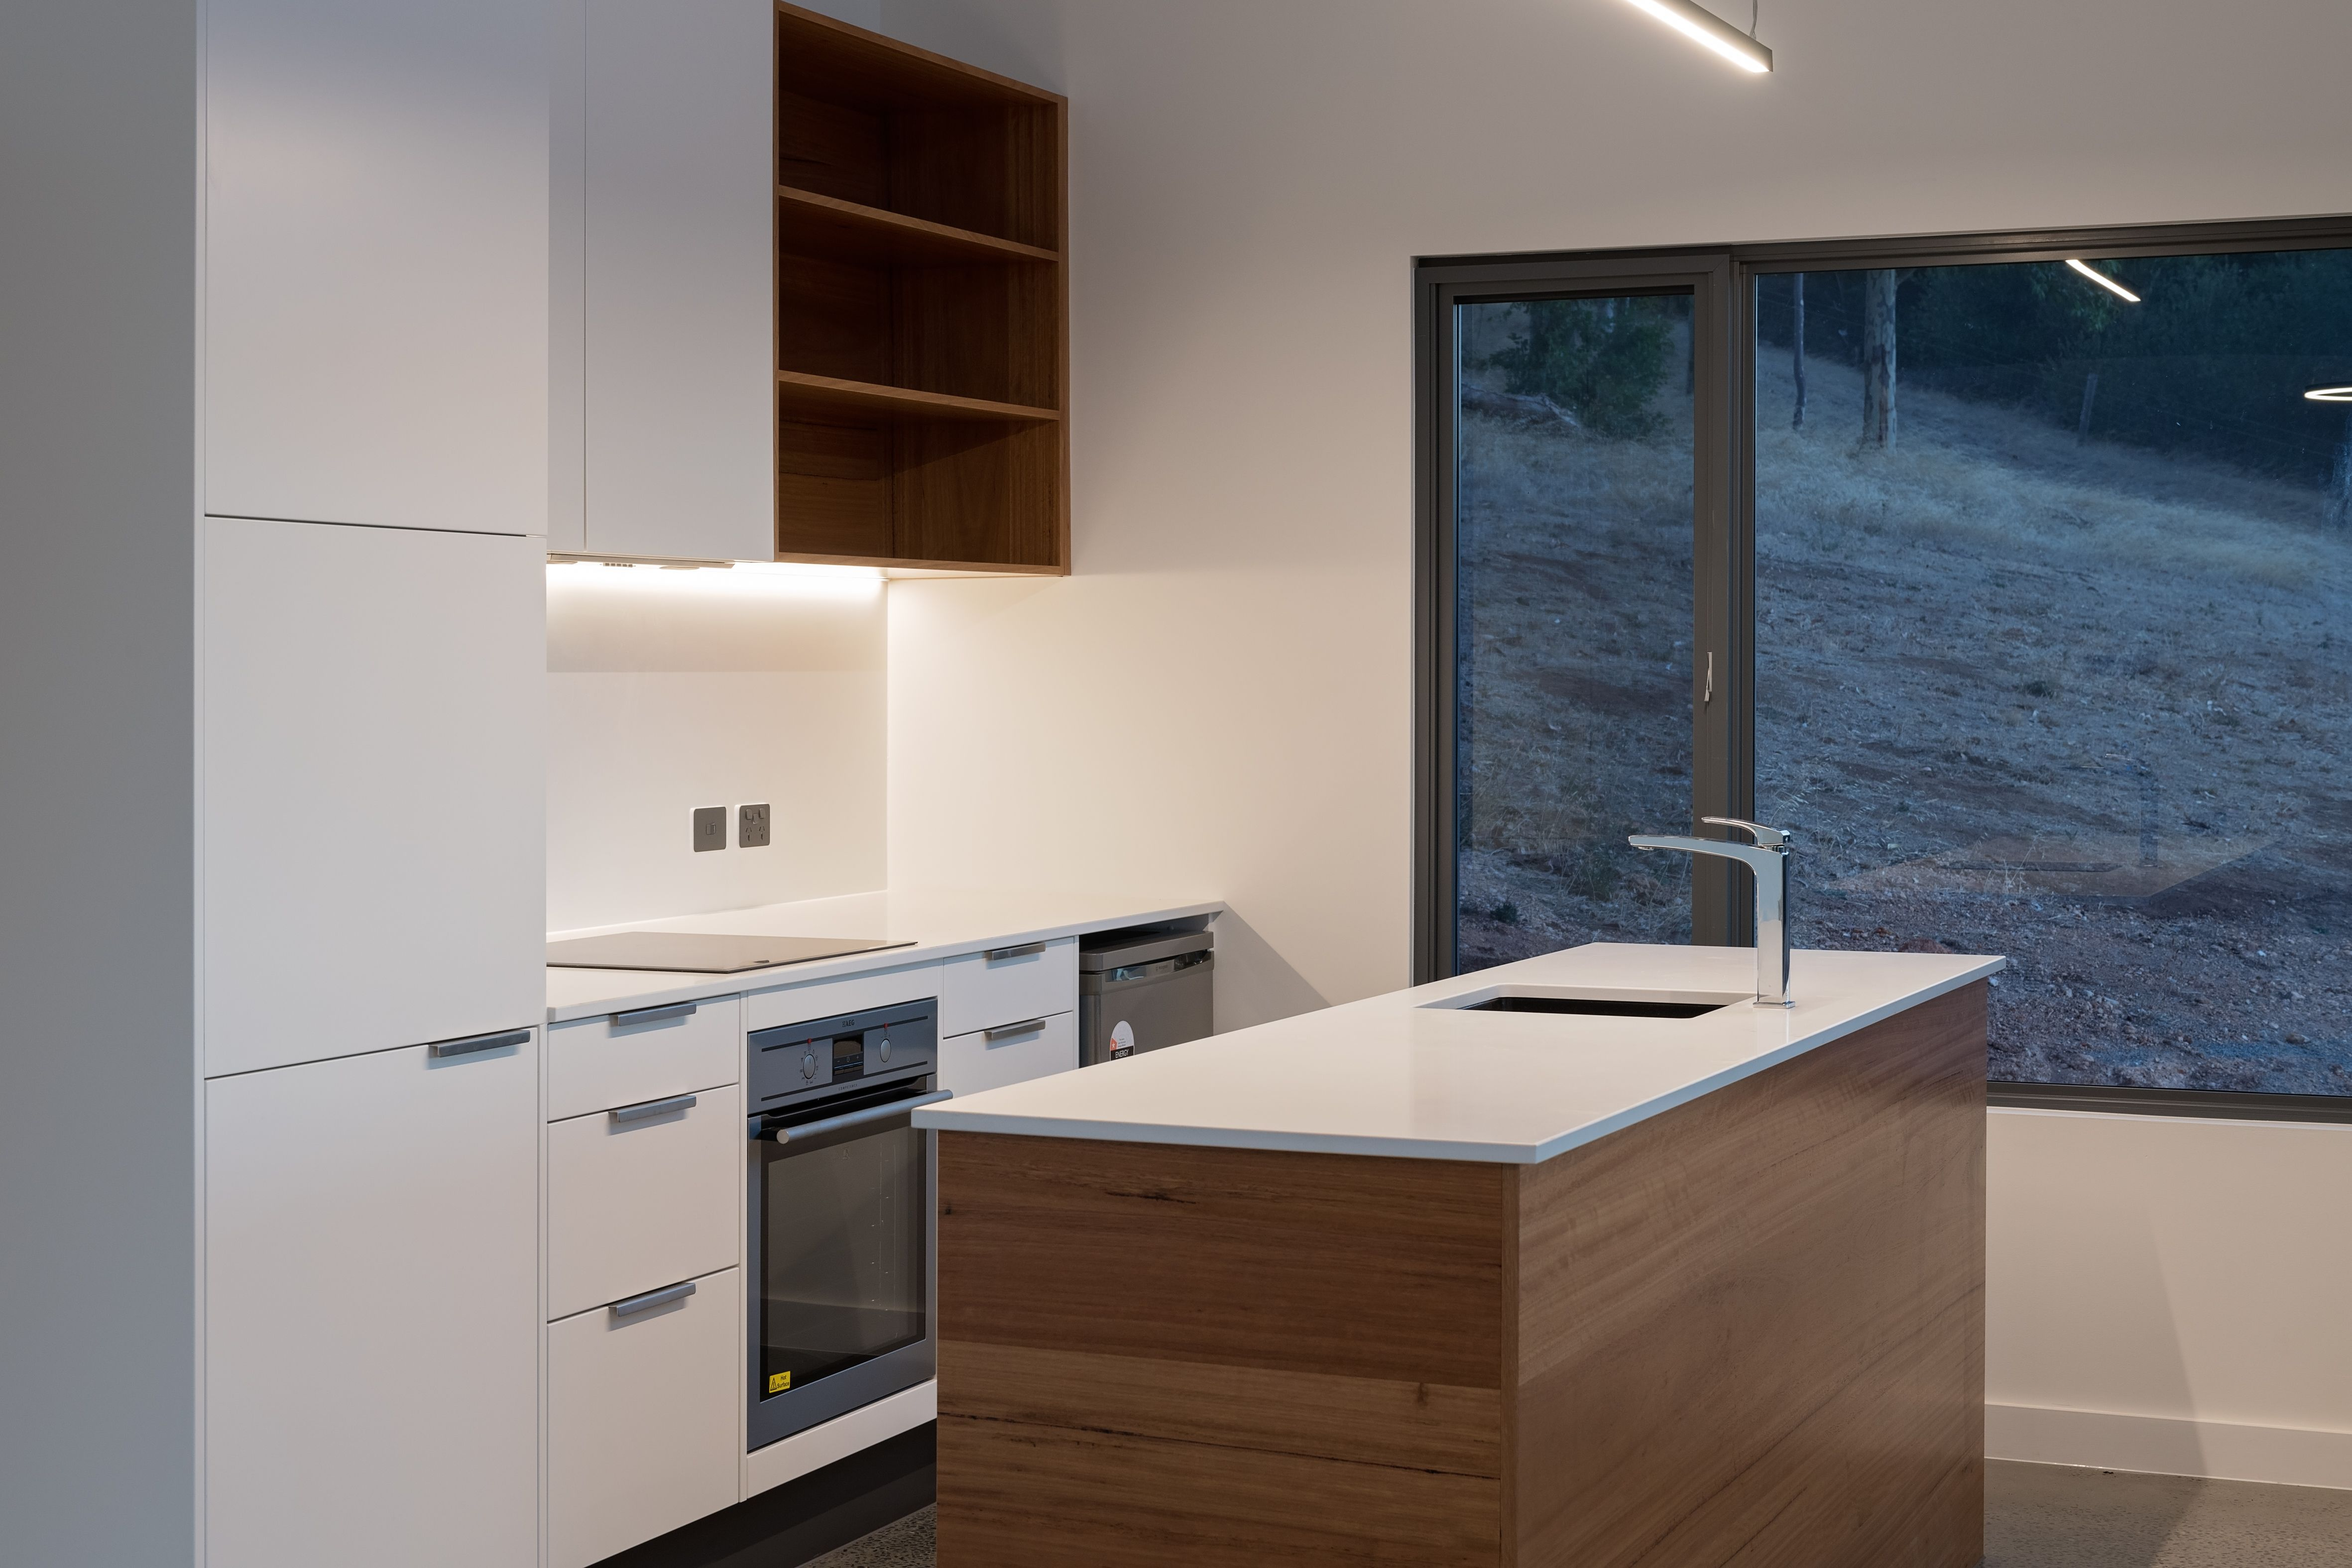 gloss white cupboards feature messmate timber island bench and rh in pinterest com